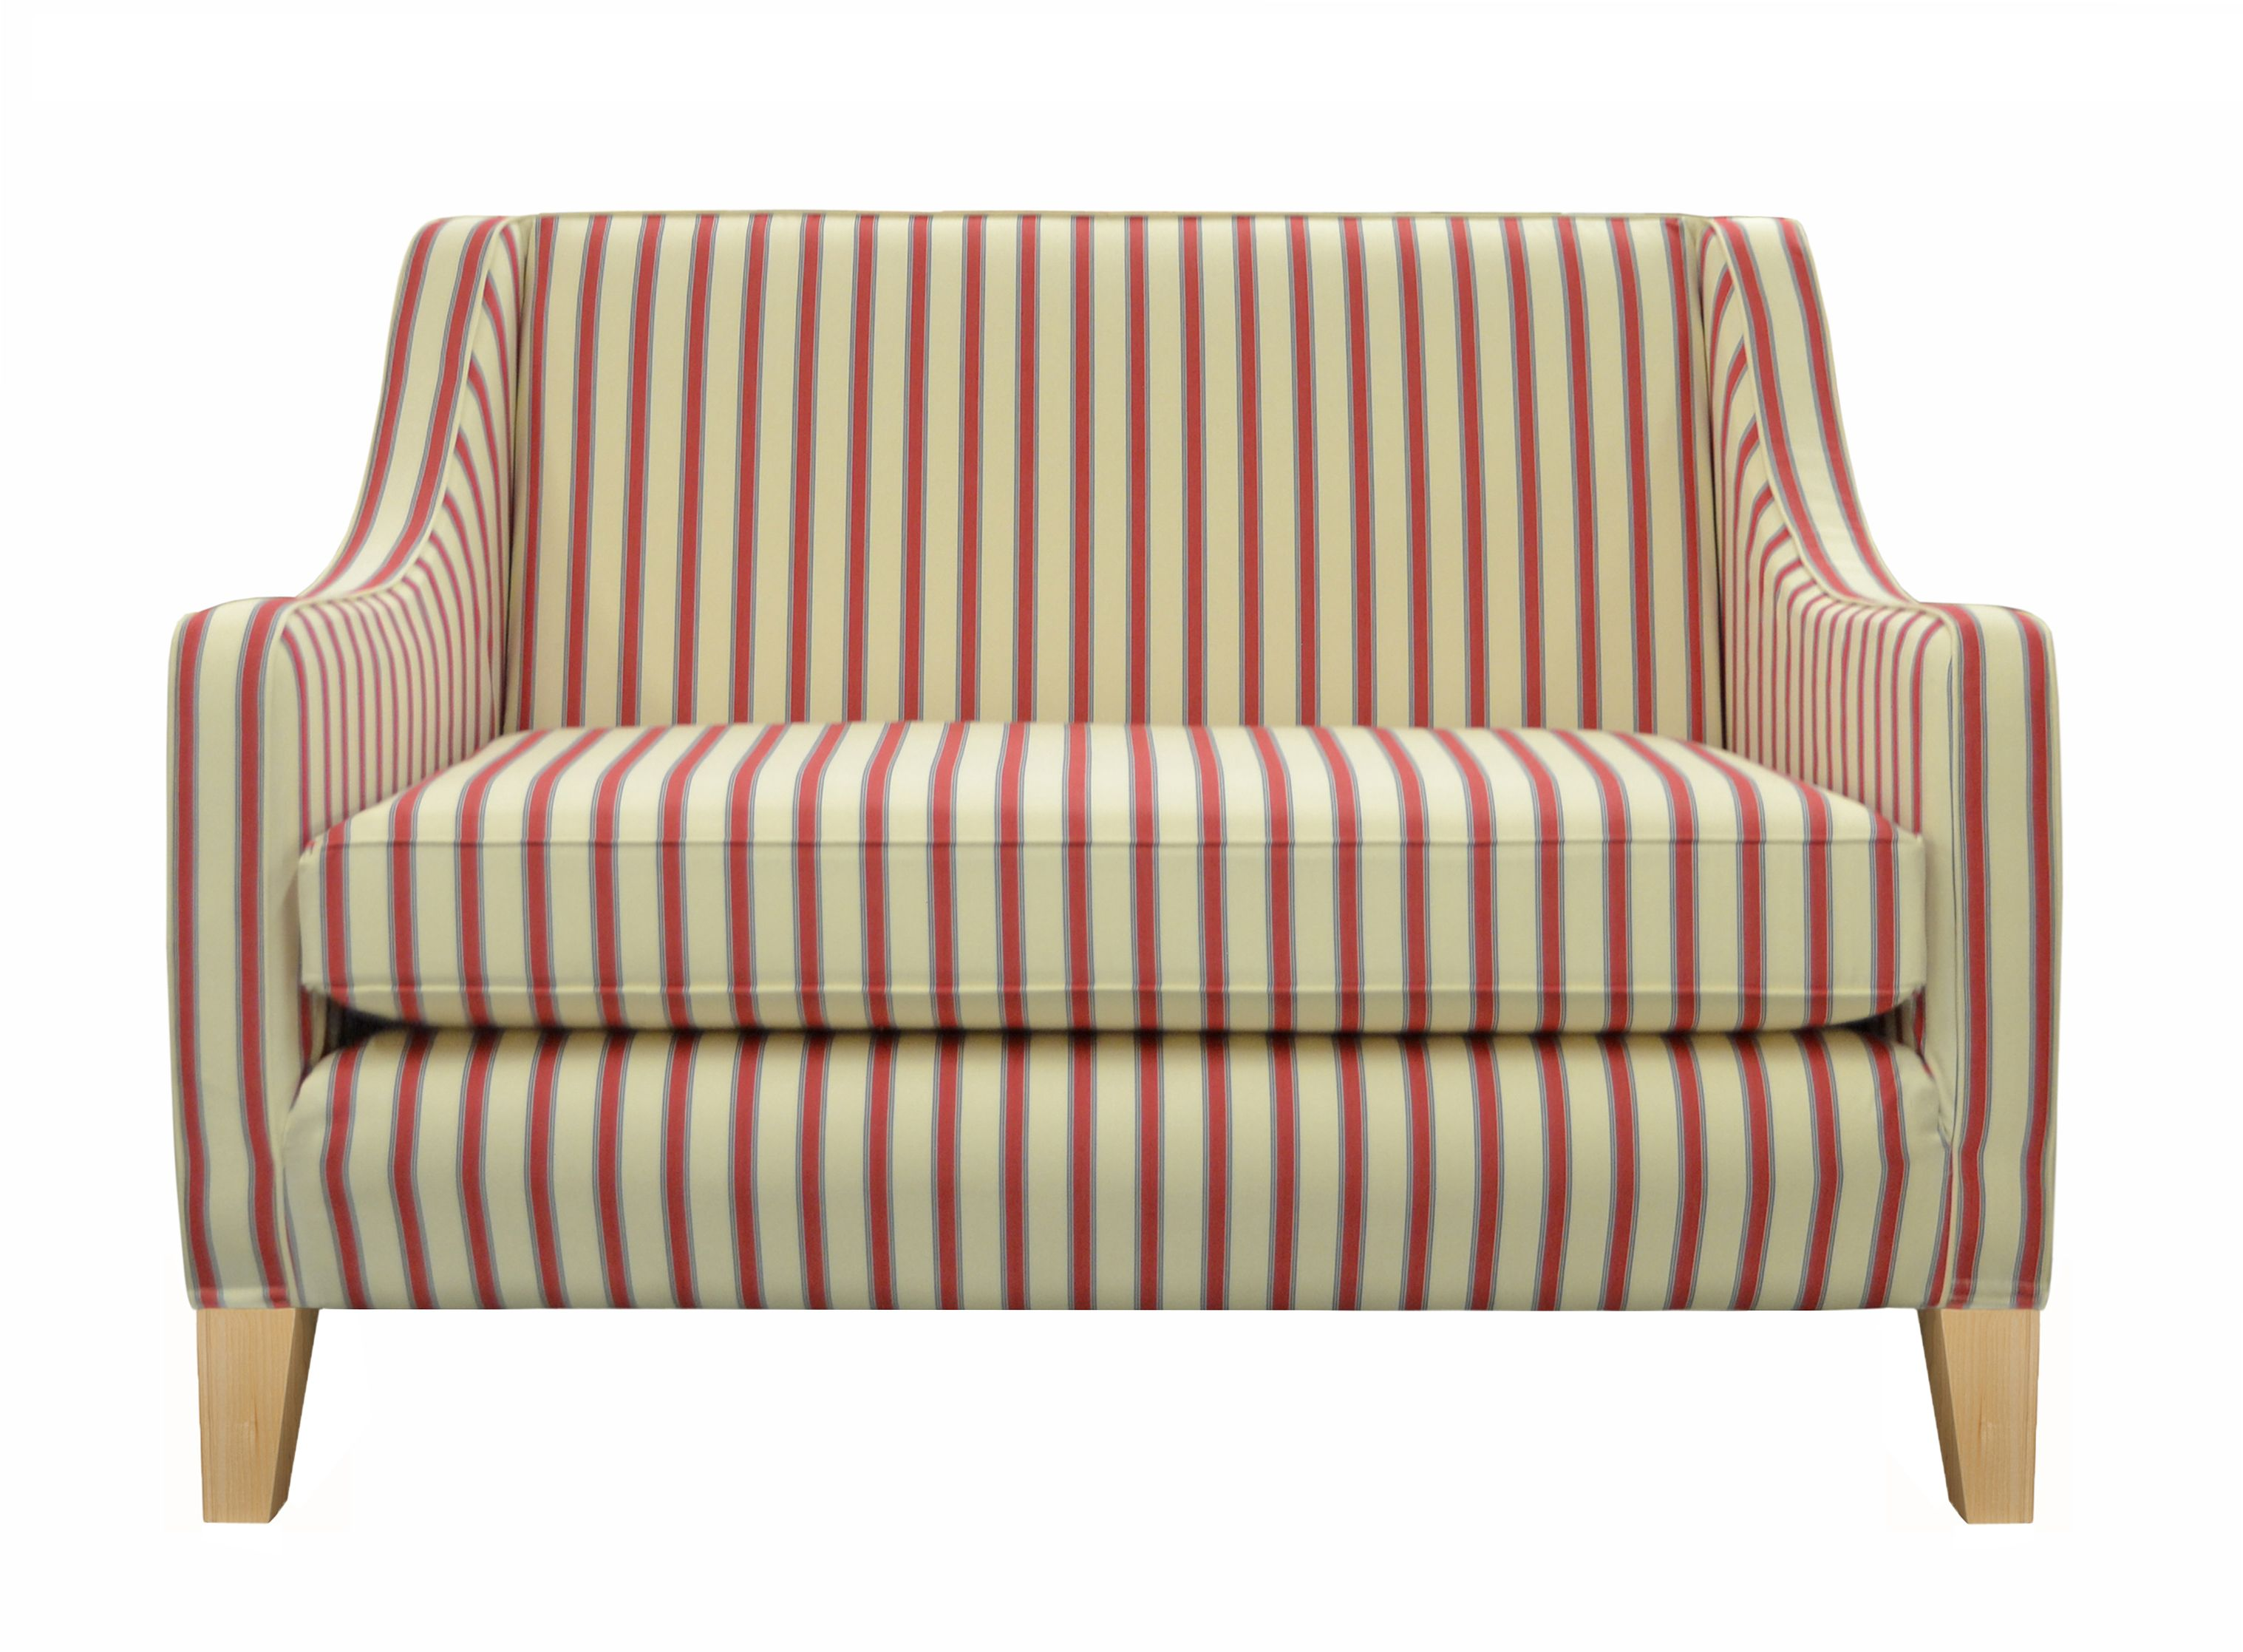 Pin By Ian Mankin On Uk Manufacturing In 2019 Striped Sofa